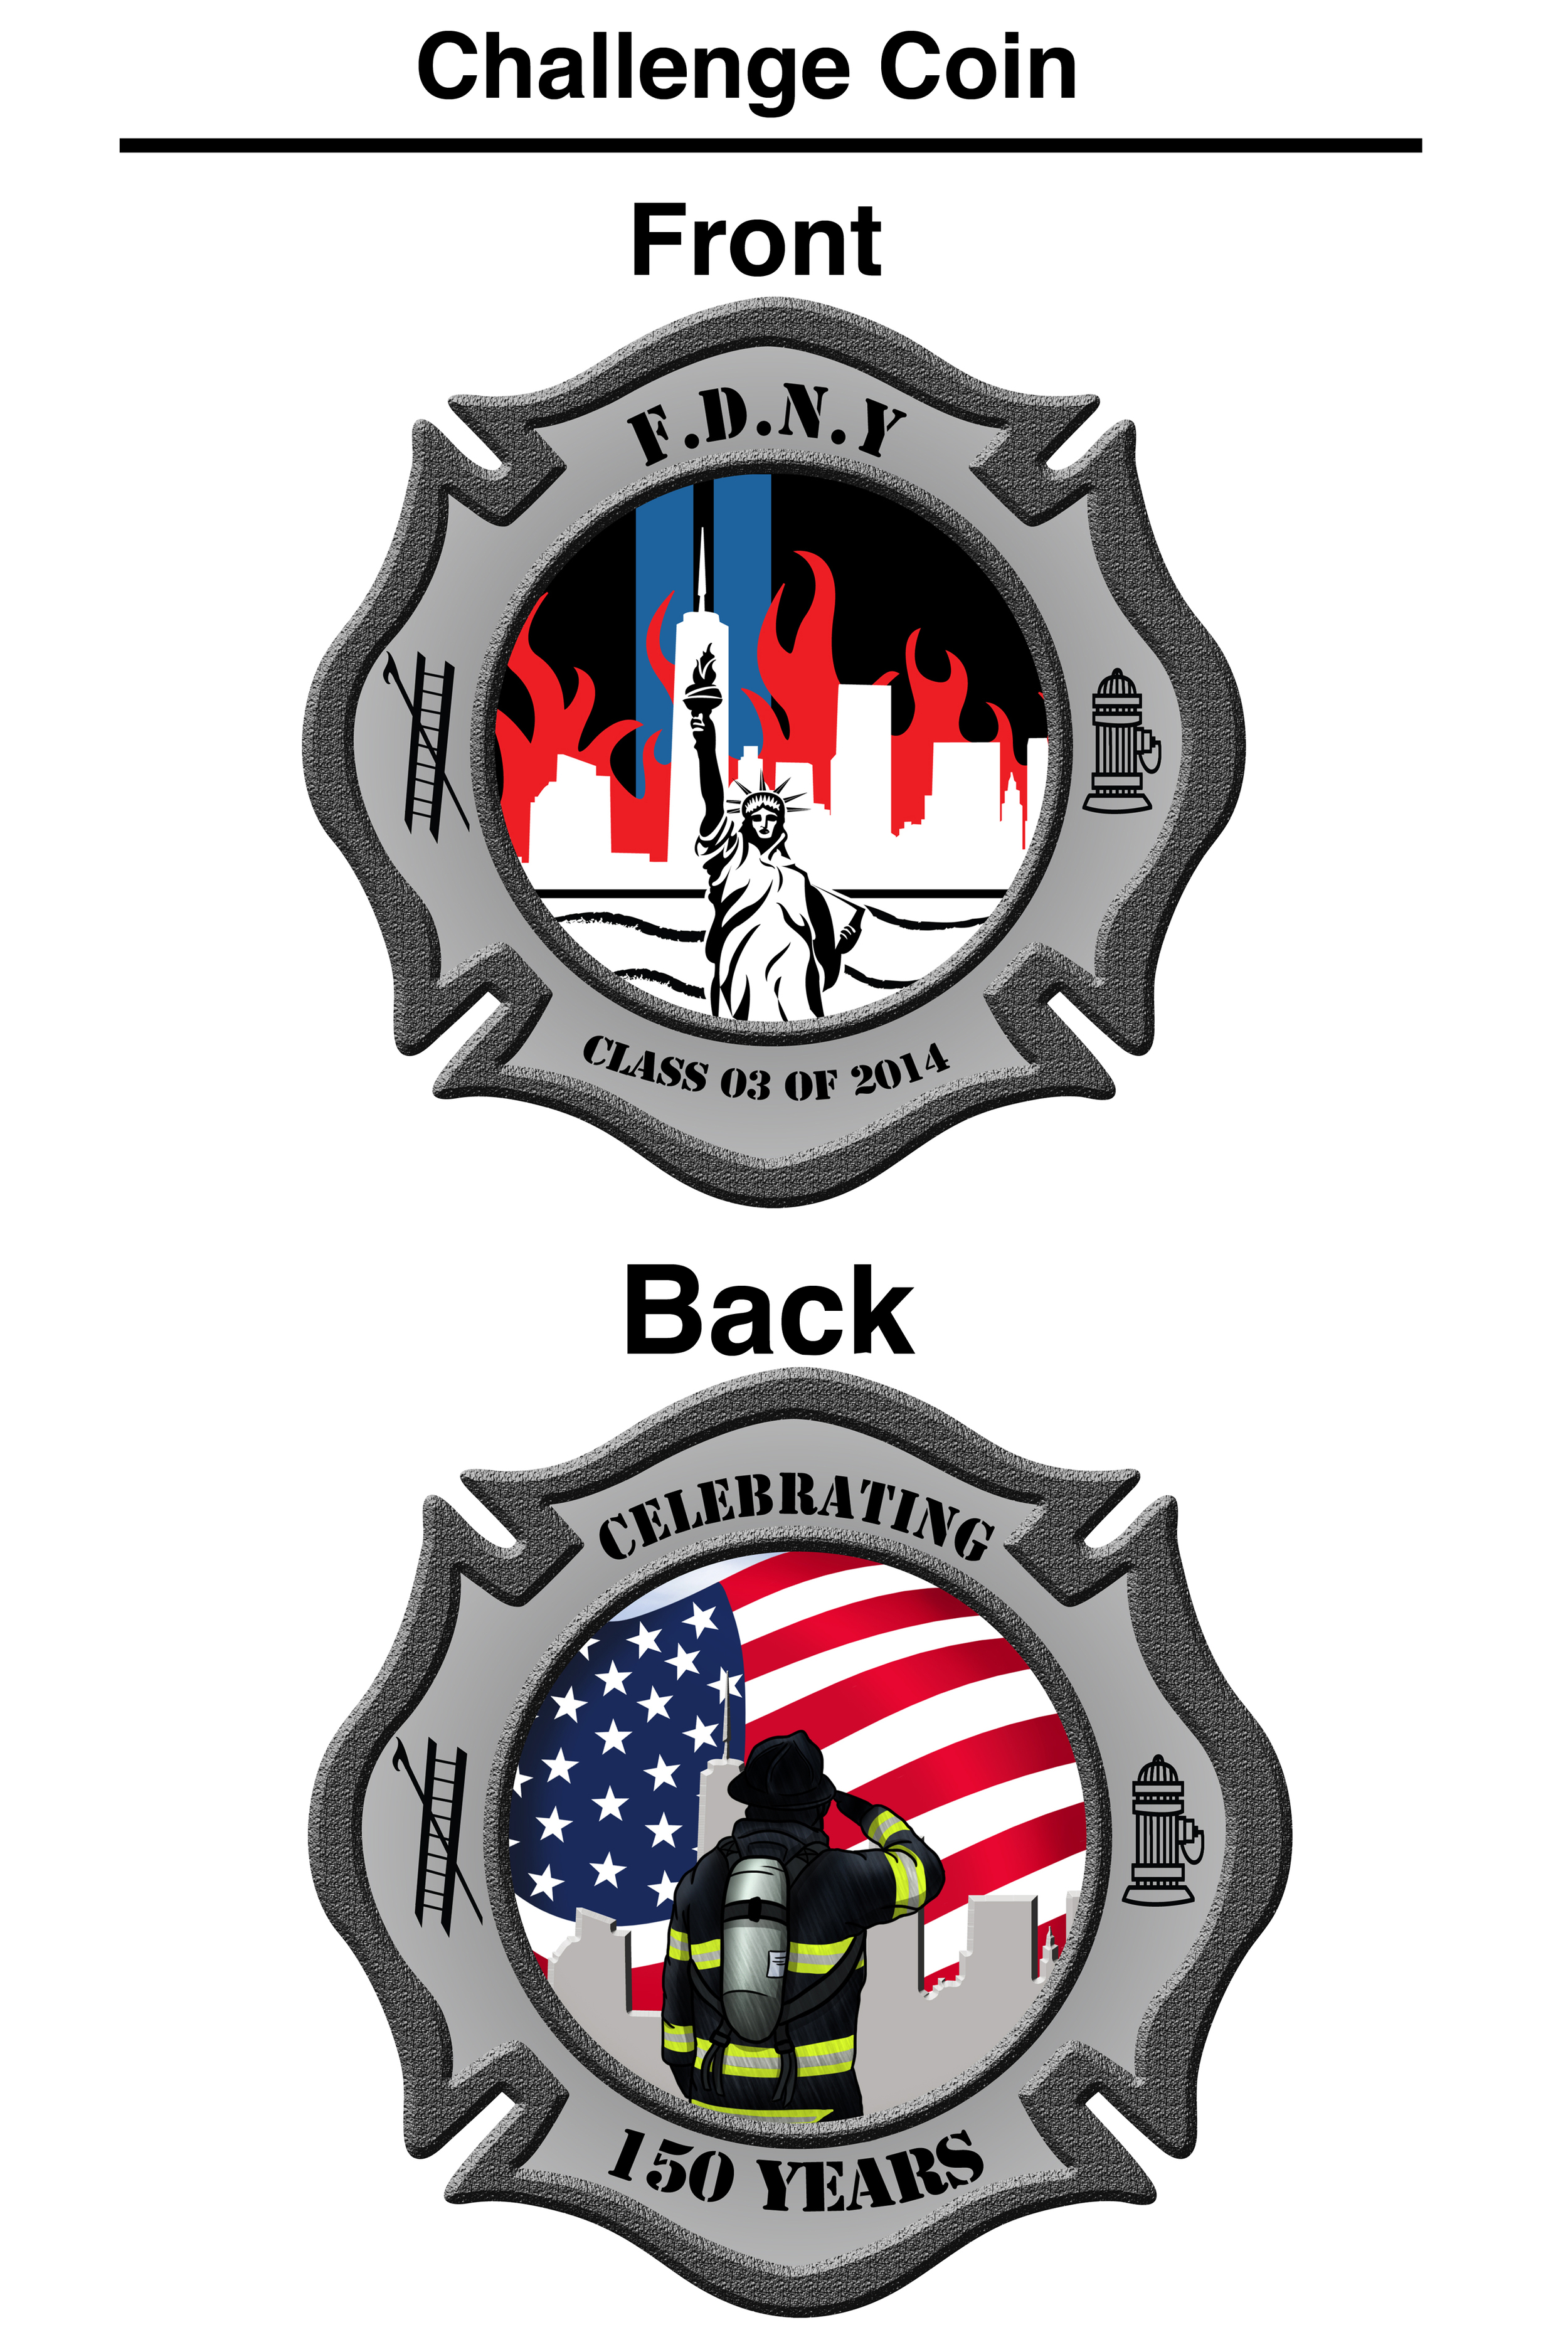 FDNY Challenge Coin Design